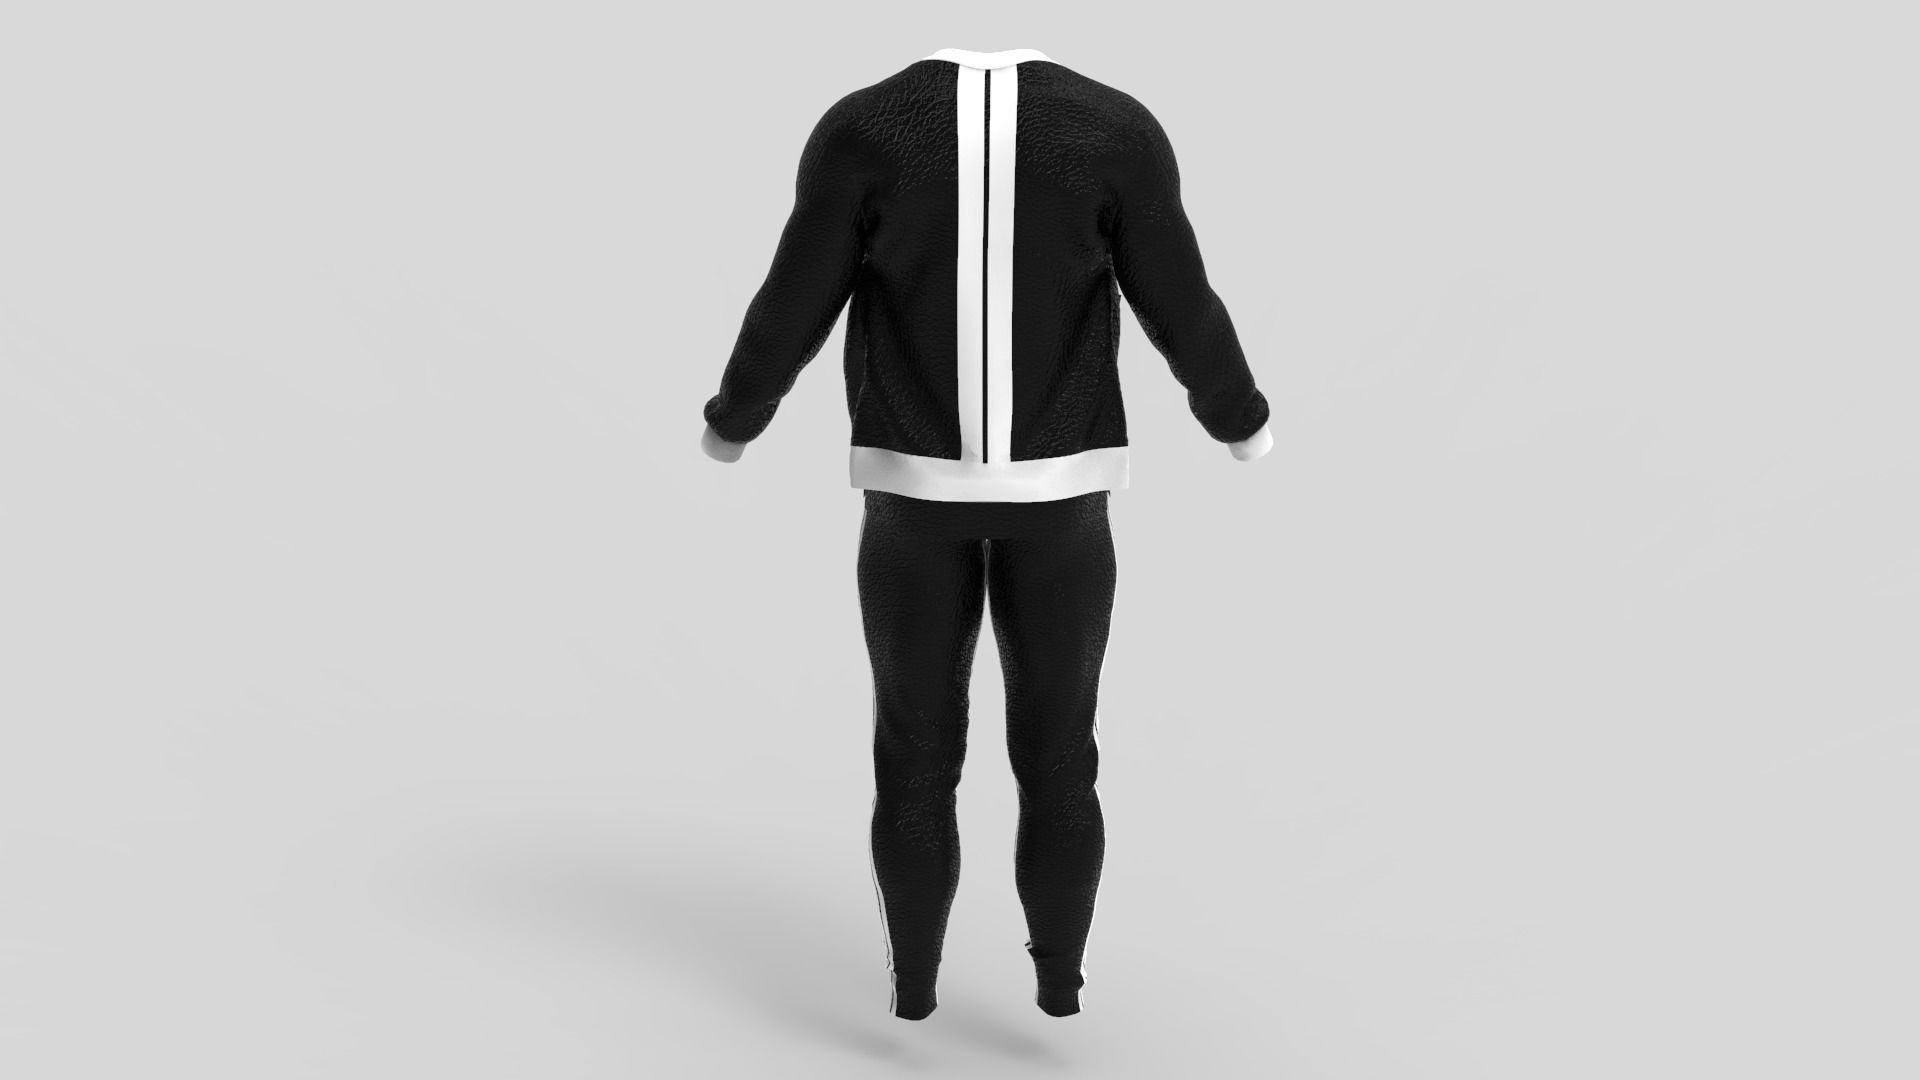 marvelous designer 7.5 id and password